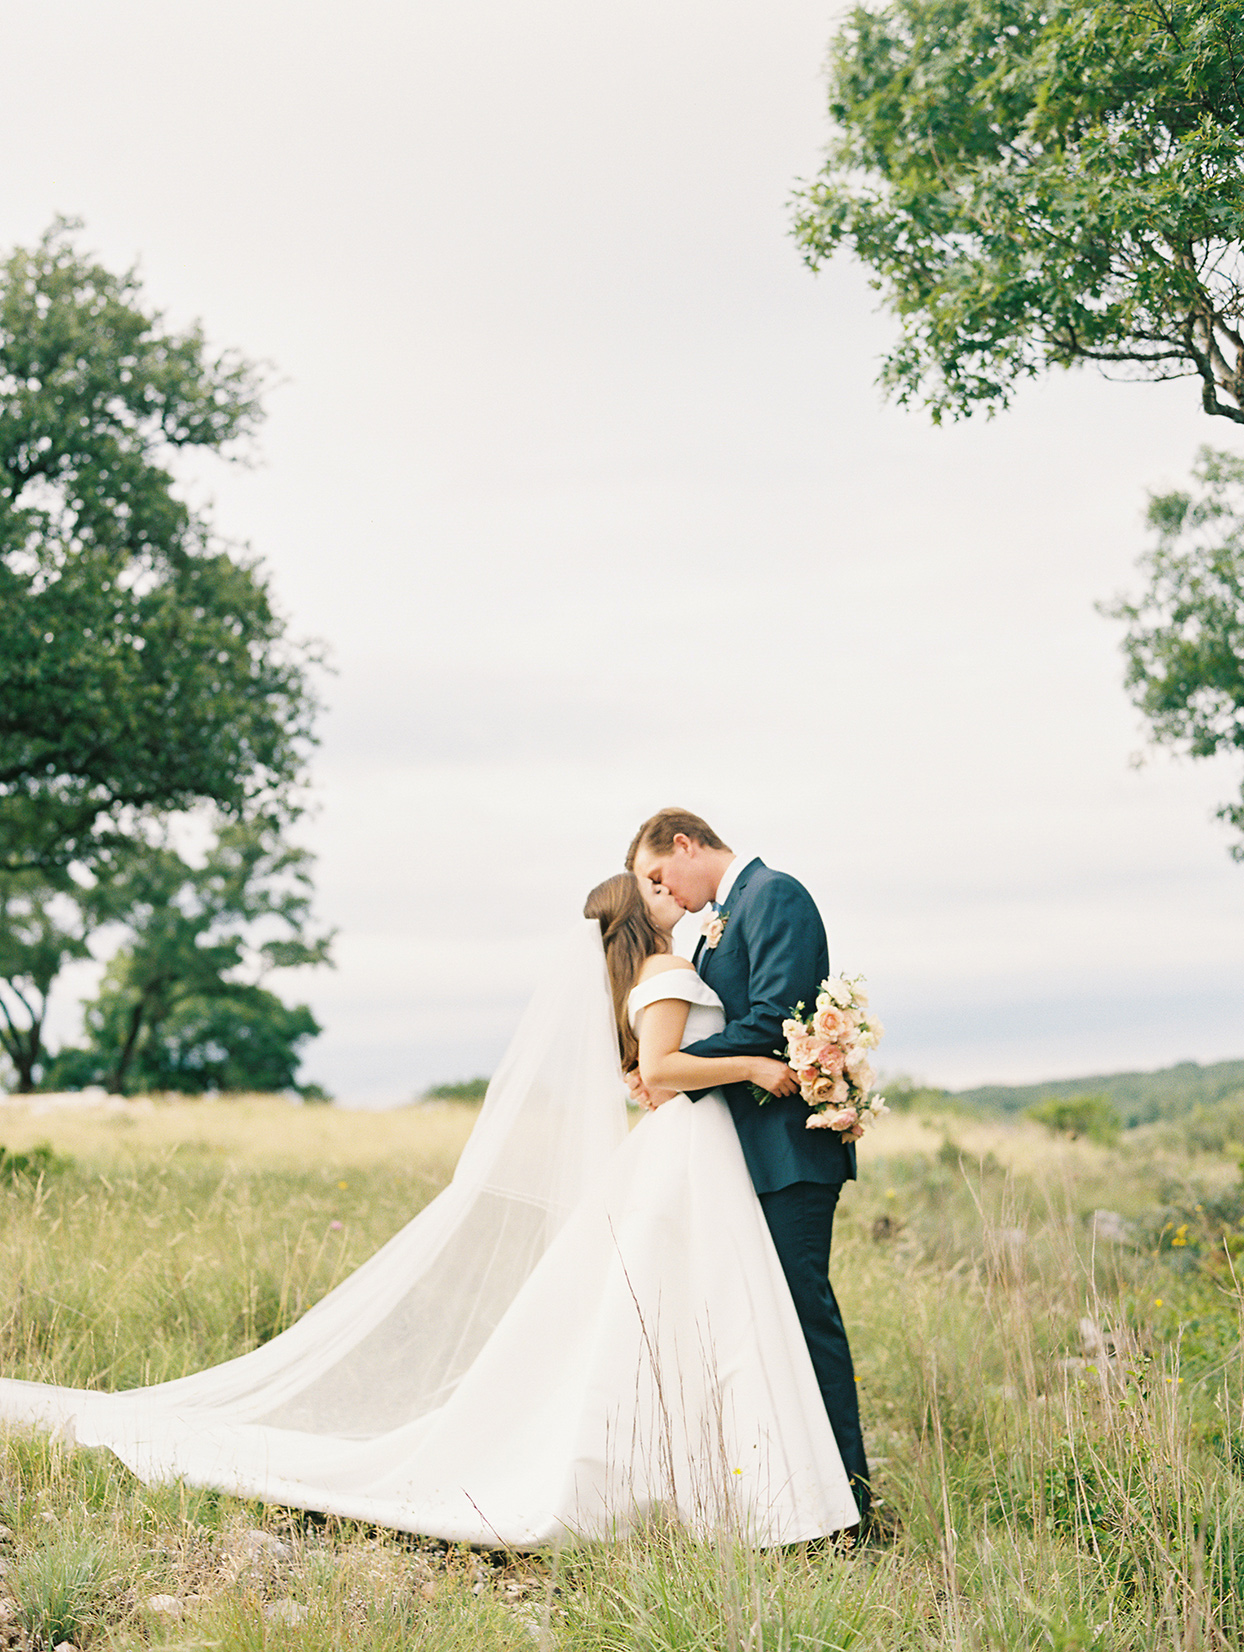 bride and groom kiss on grassy hillside